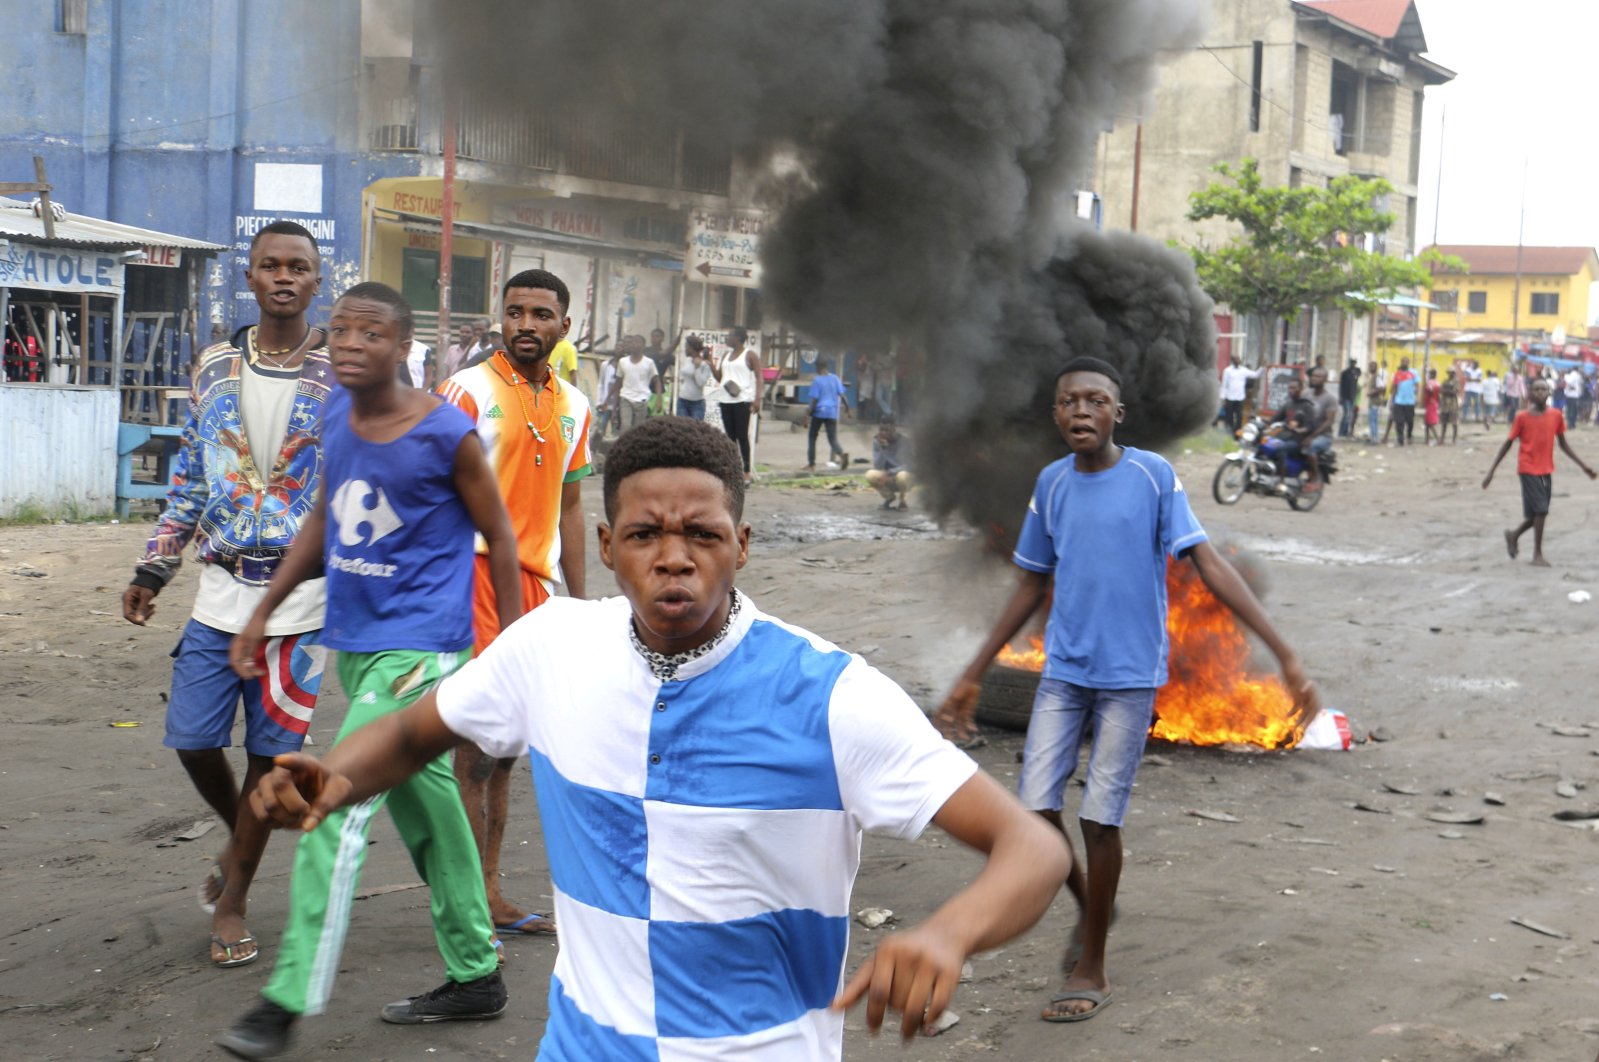 Congolese boys take part in a protest against President Joseph Kabila's refusal to step down from power in Kinshasa, Democratic Republic of Congo, Dec. 31, 2017. (AP Photo)